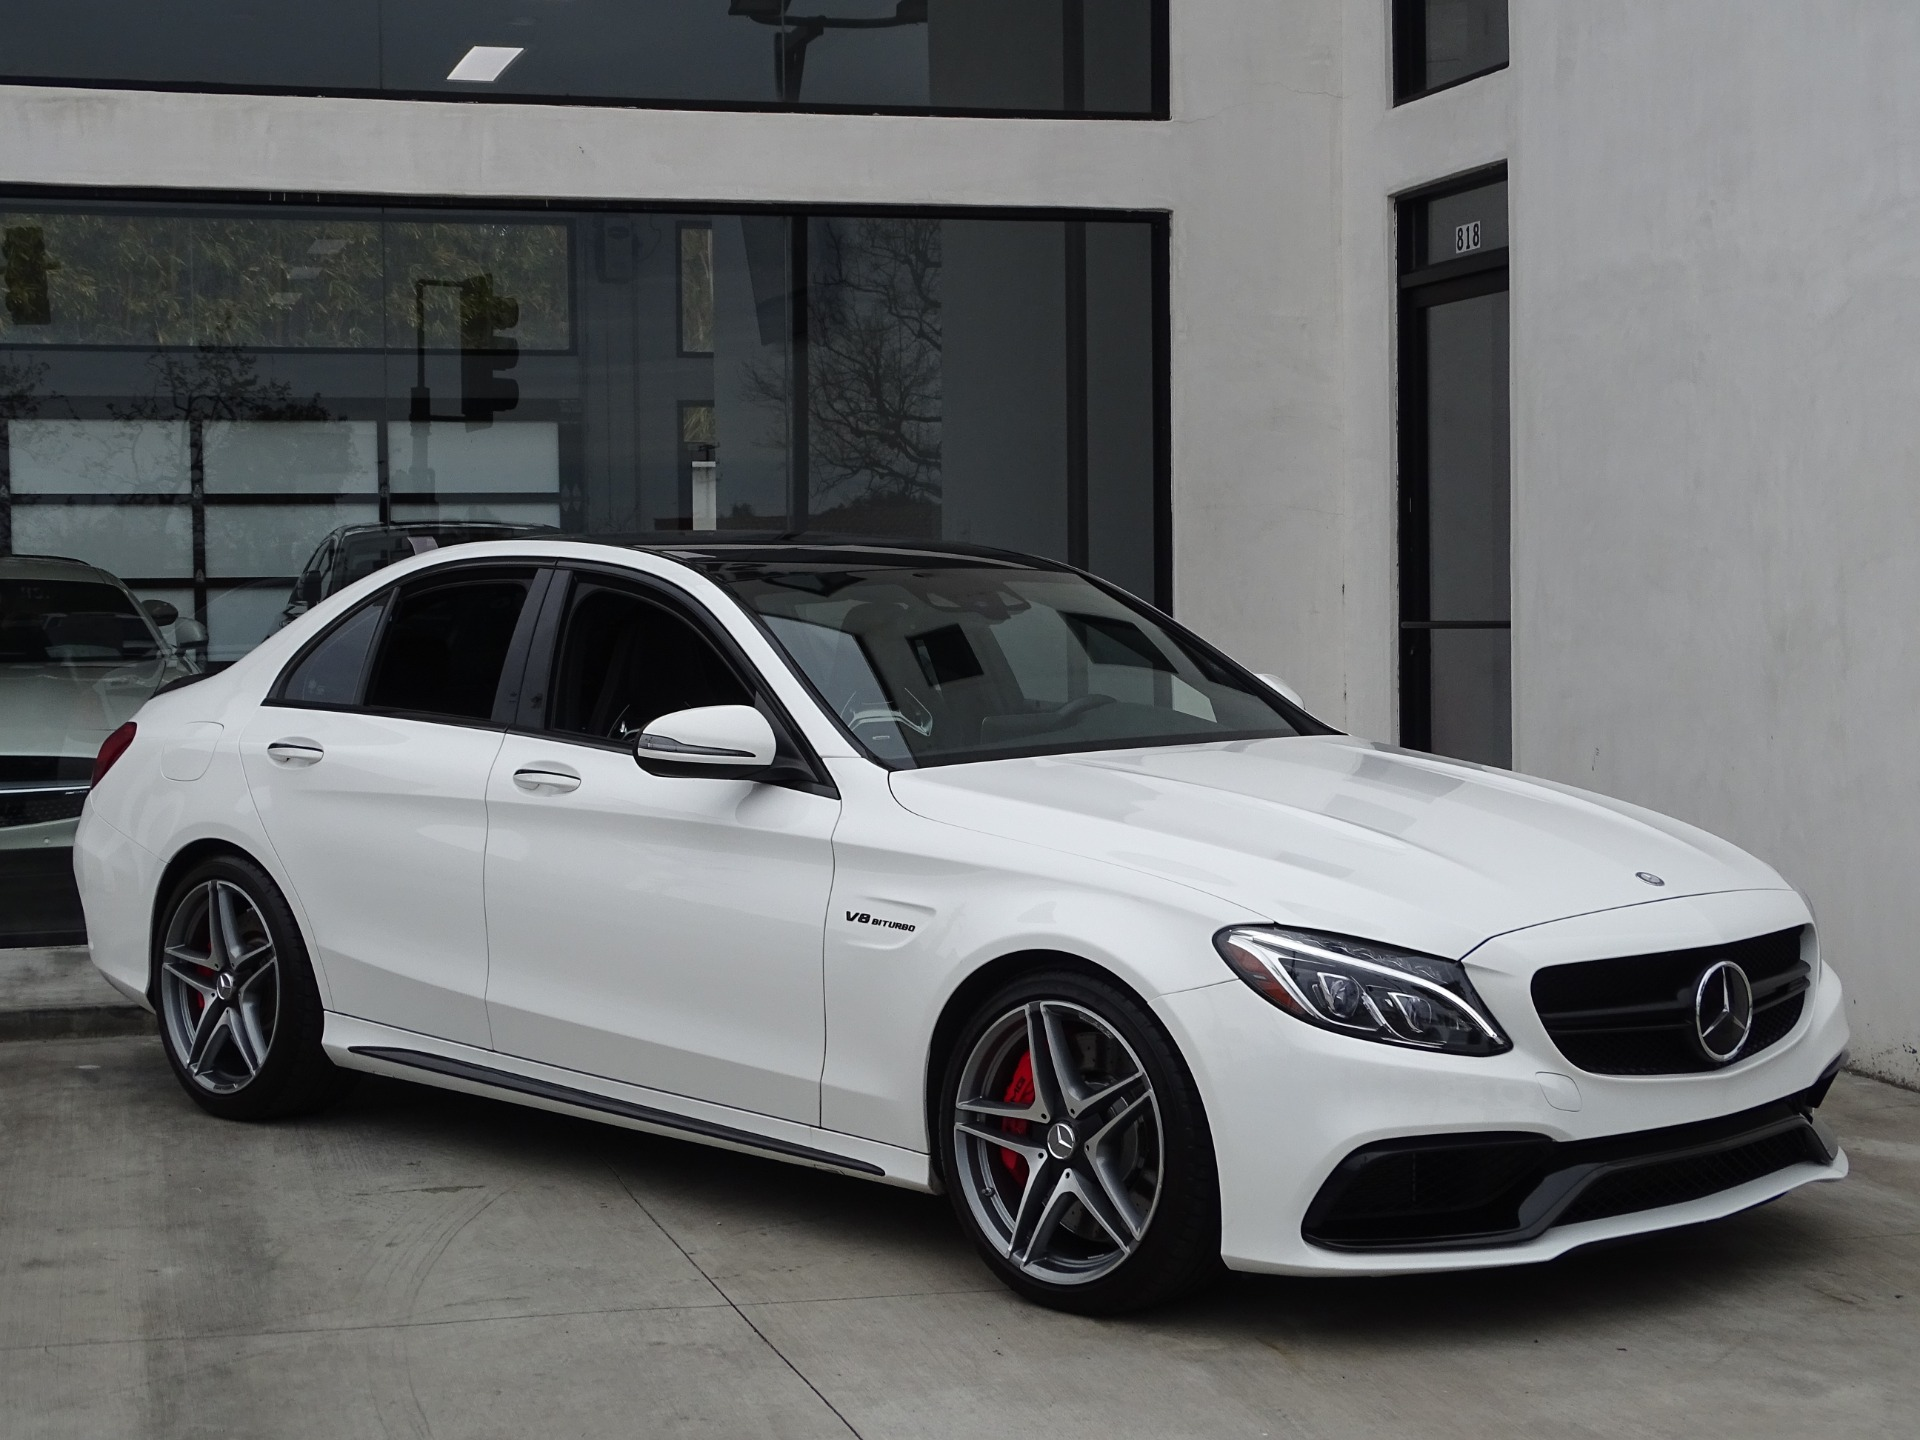 2016 Mercedes Benz C Class Amg C63 S Performance